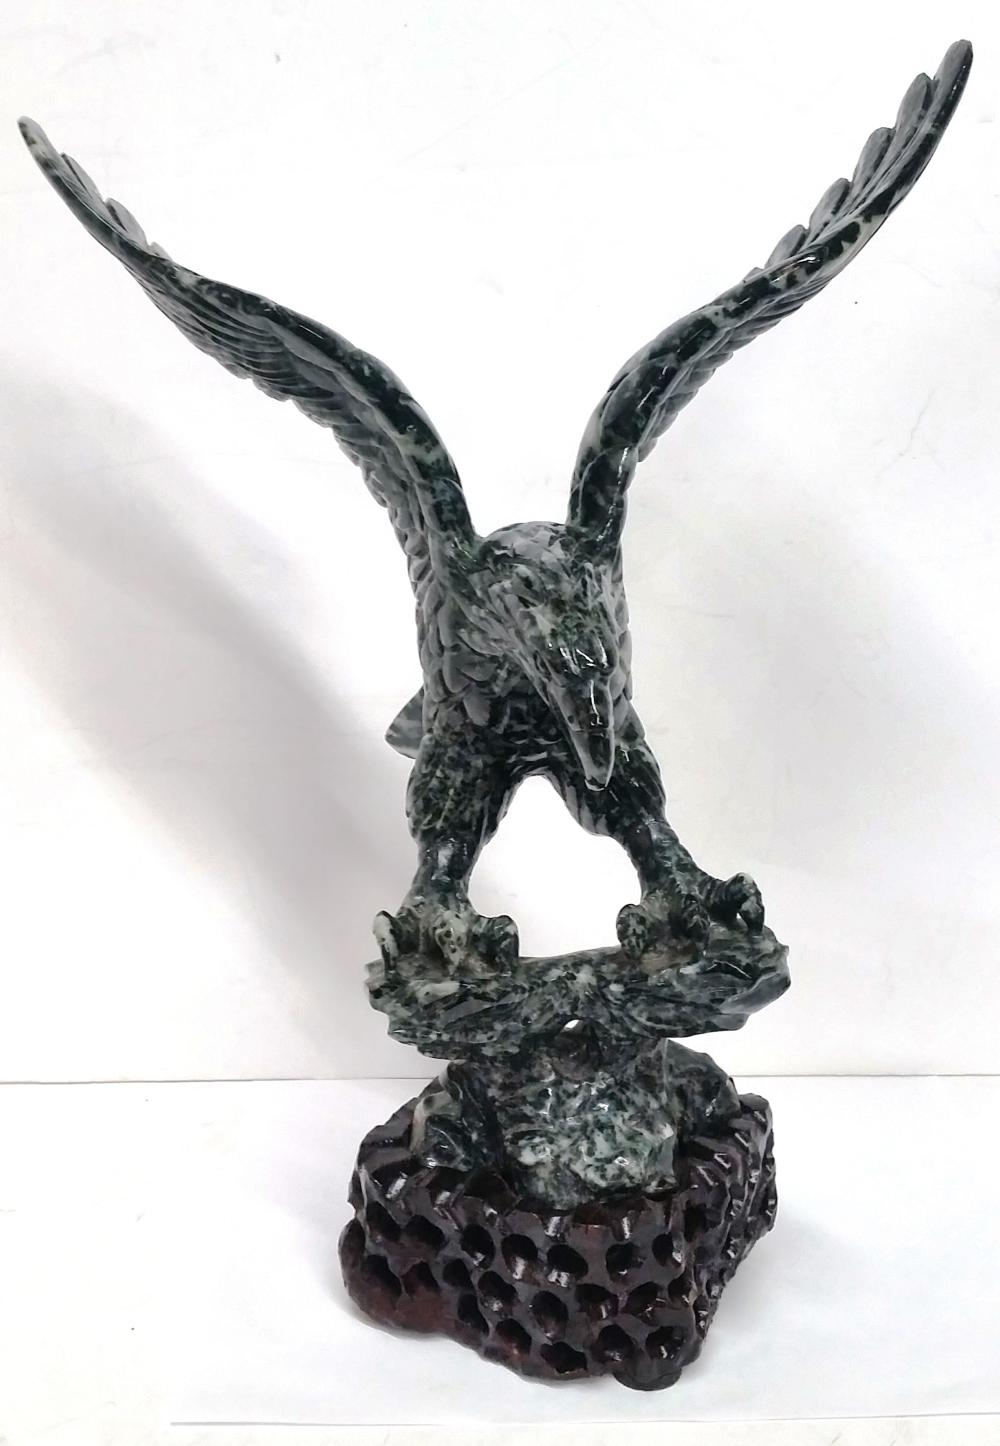 Lot 1512: Antique Chinese Asian Black White Nephrite Jade Carved Eagle Sculpture Statue Wooden Base